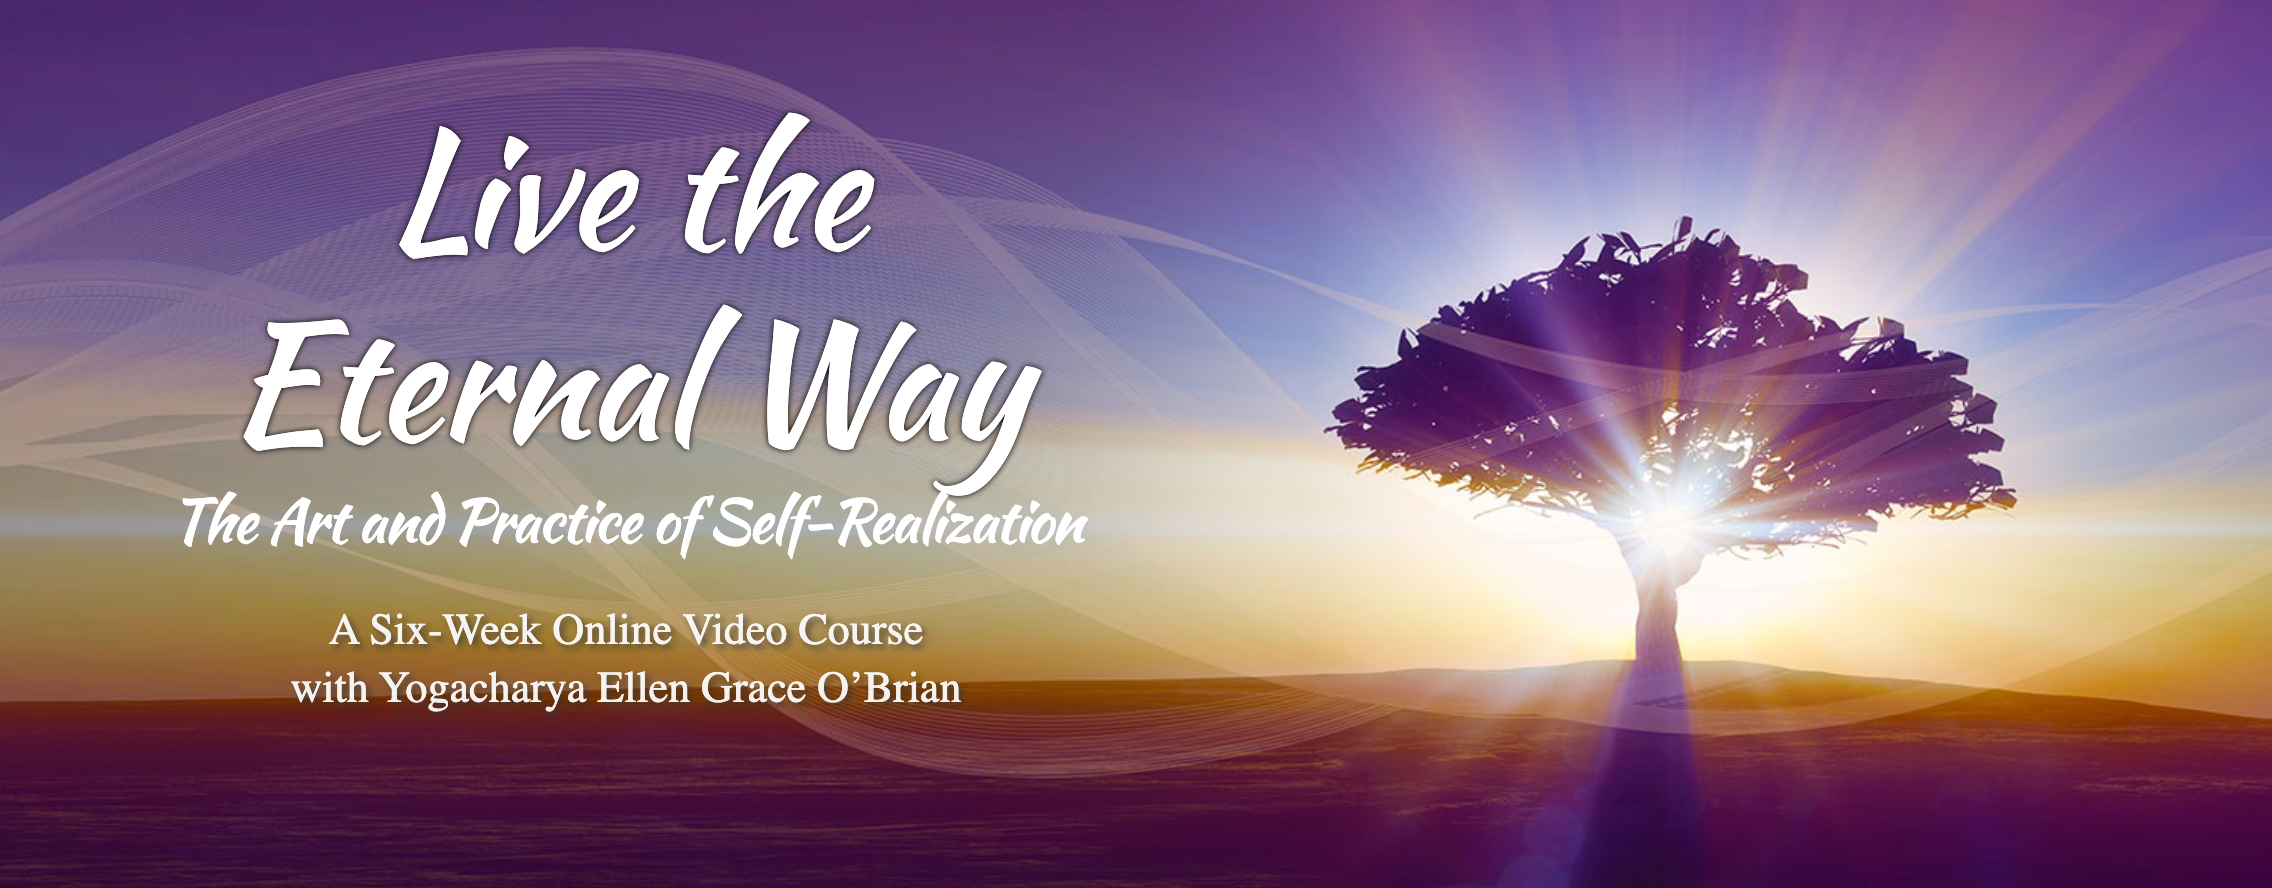 Live the eternal way online course